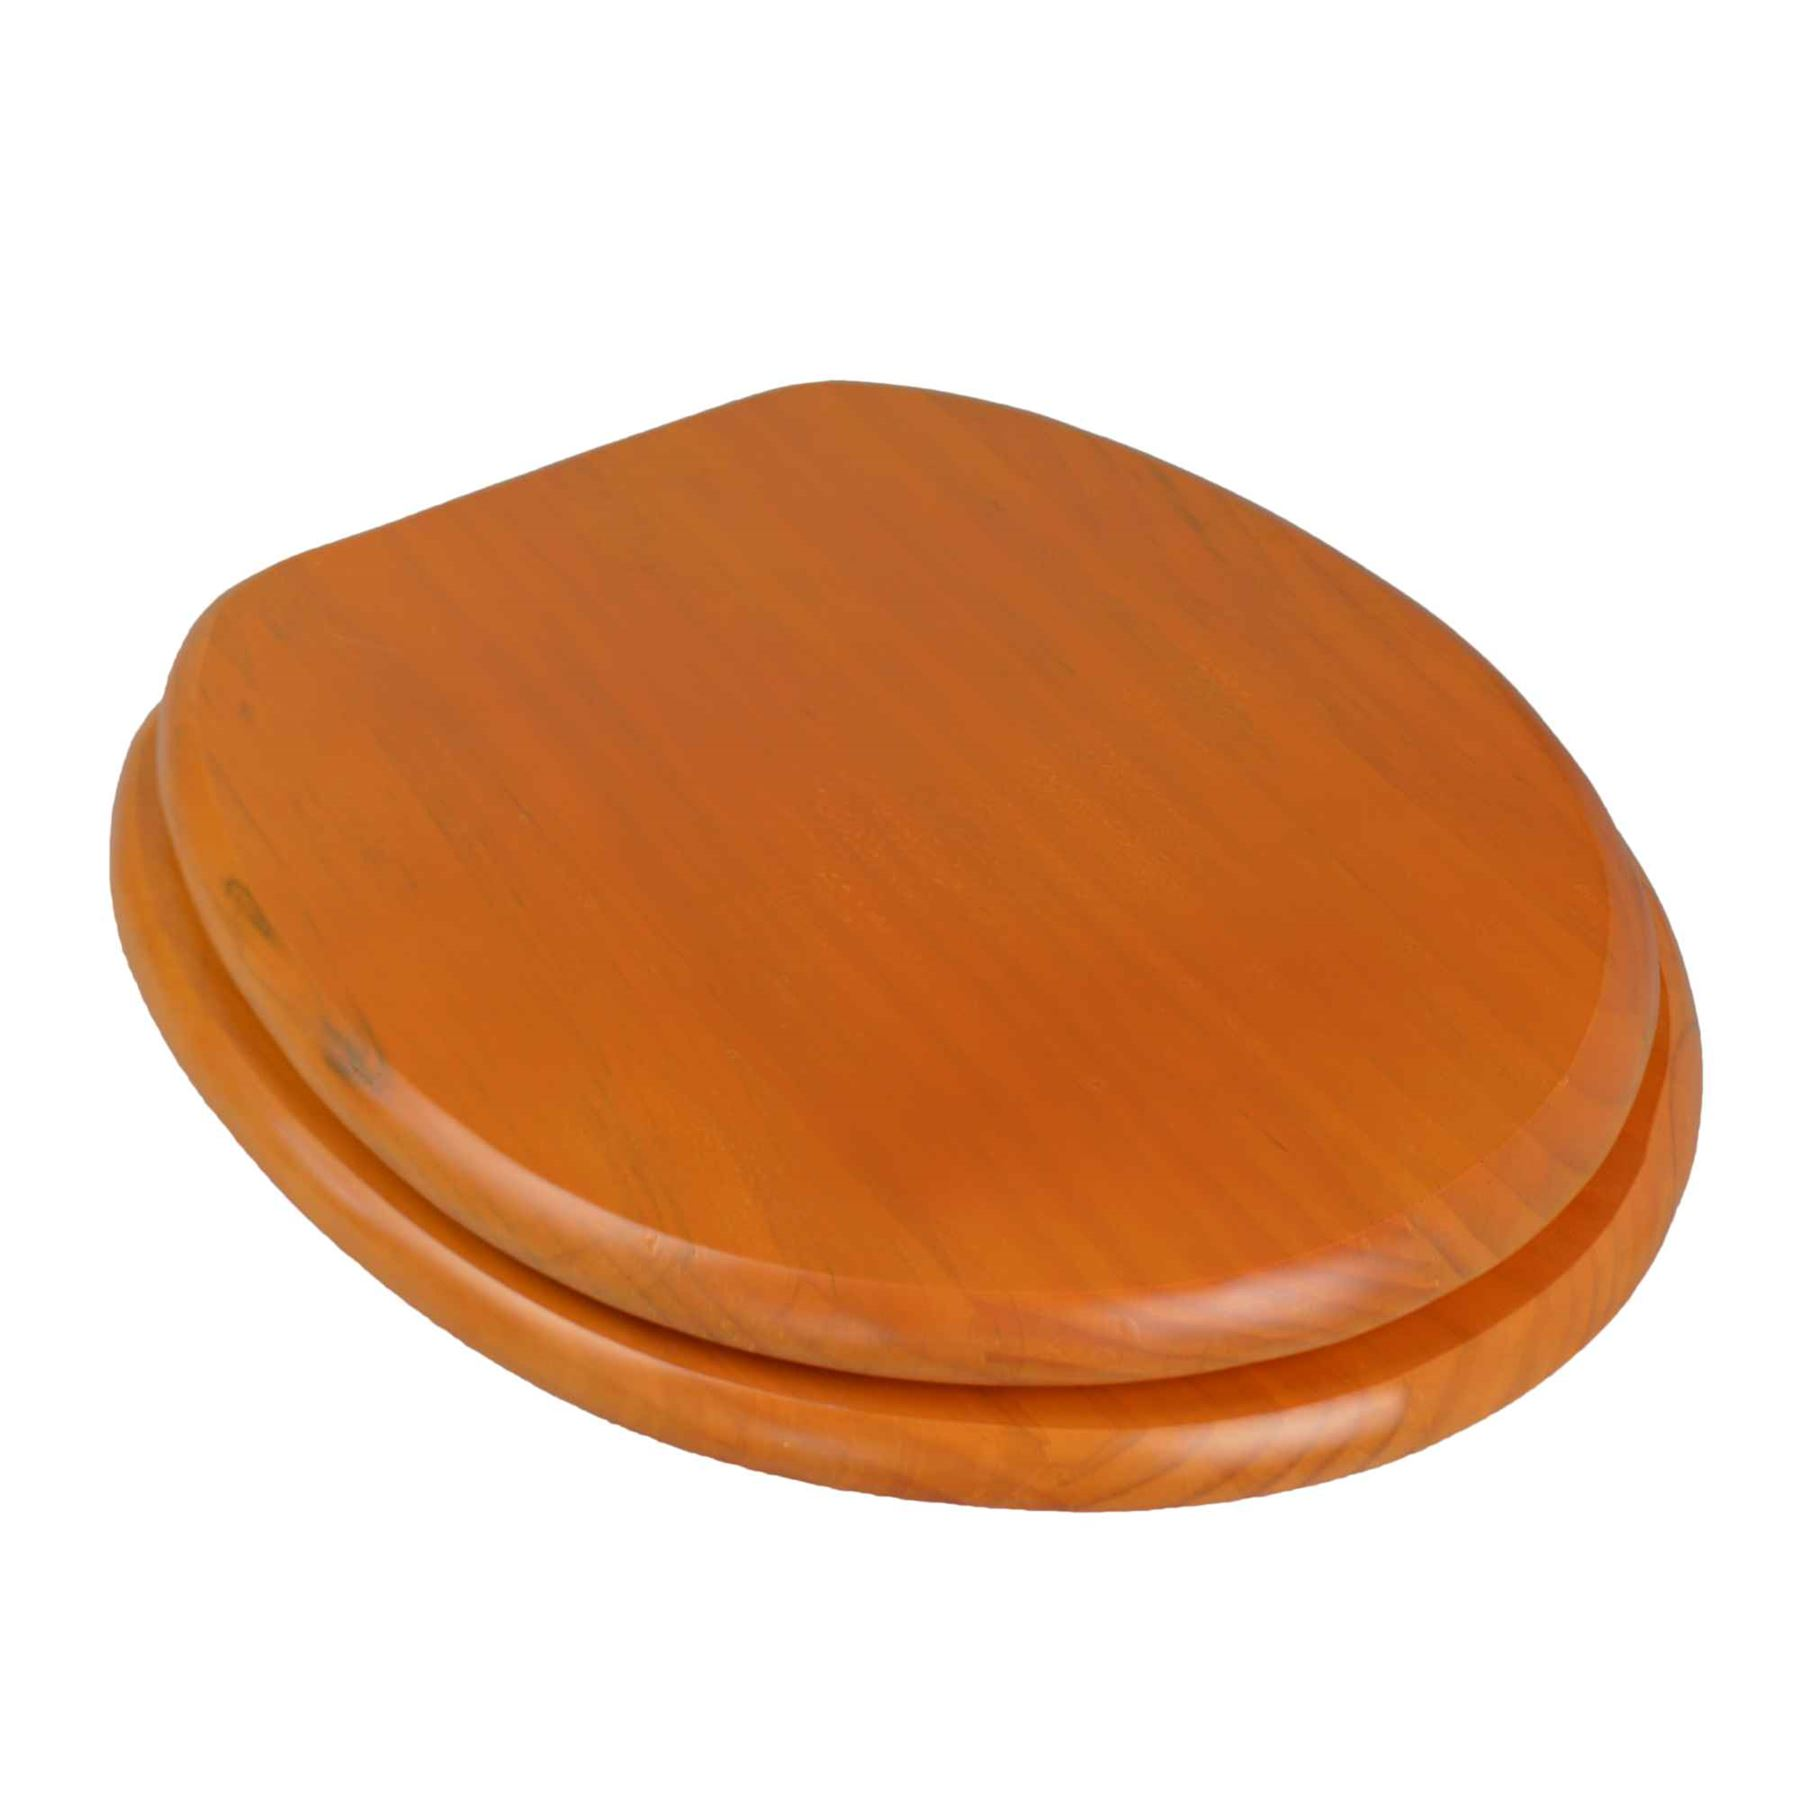 Wooden Bathroom Toilet Seat. Dark Pine Colour. Fixings Included